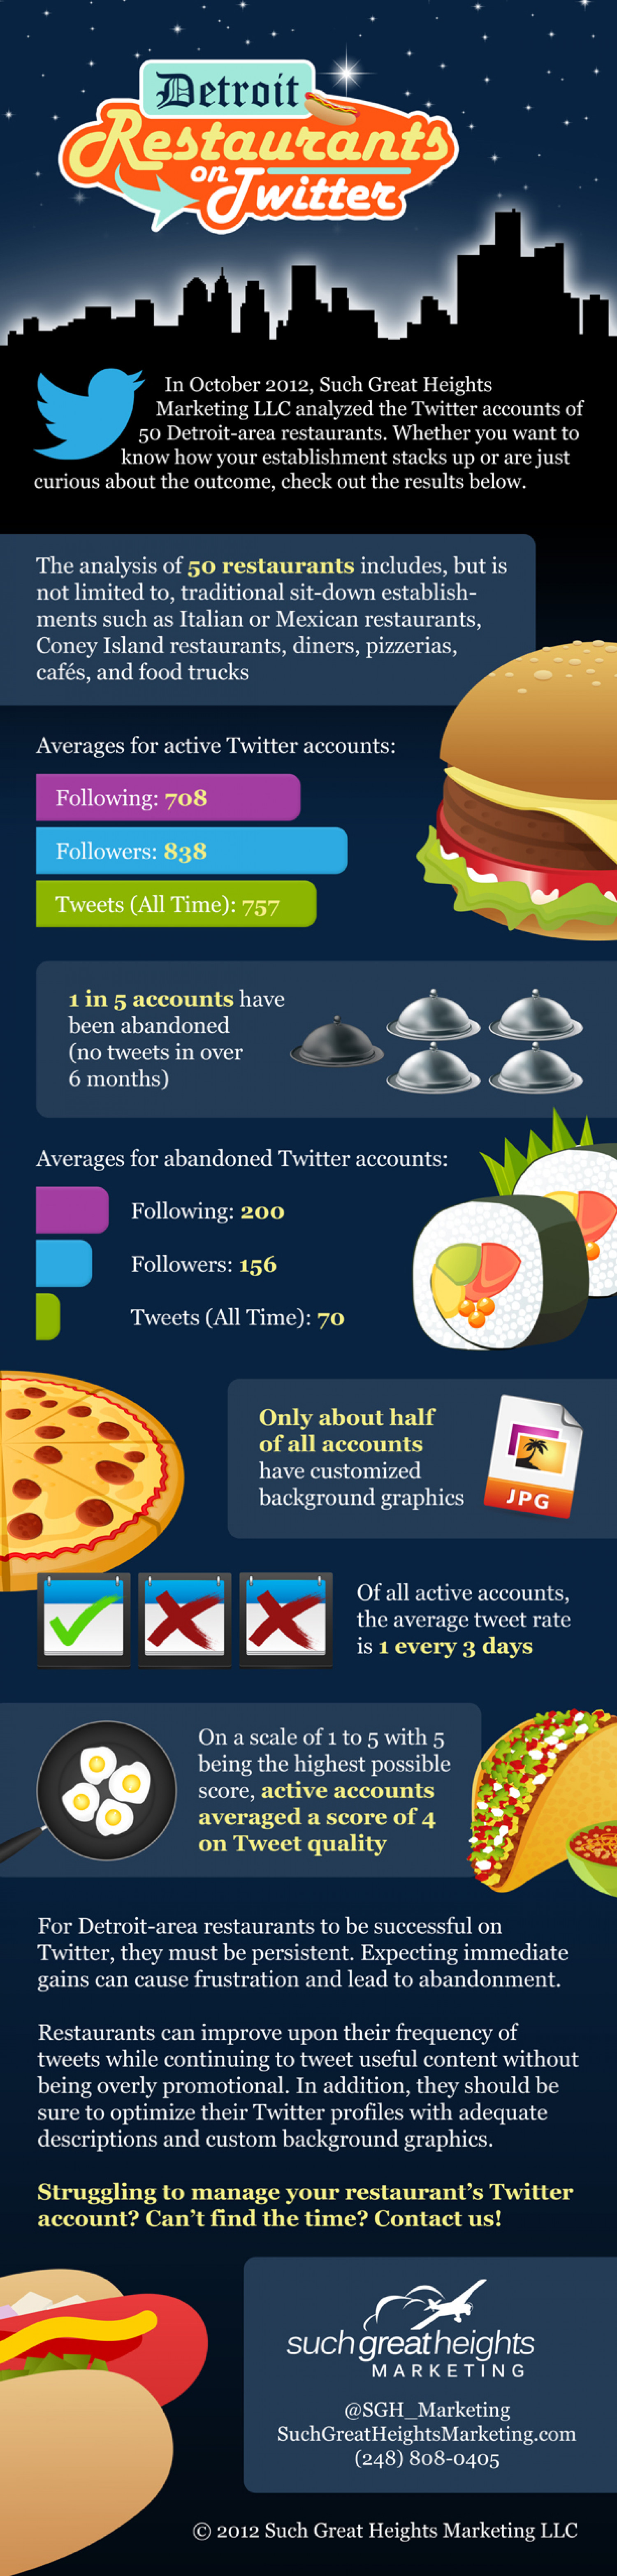 Detroit Restaurants on Twitter 2012 Infographic